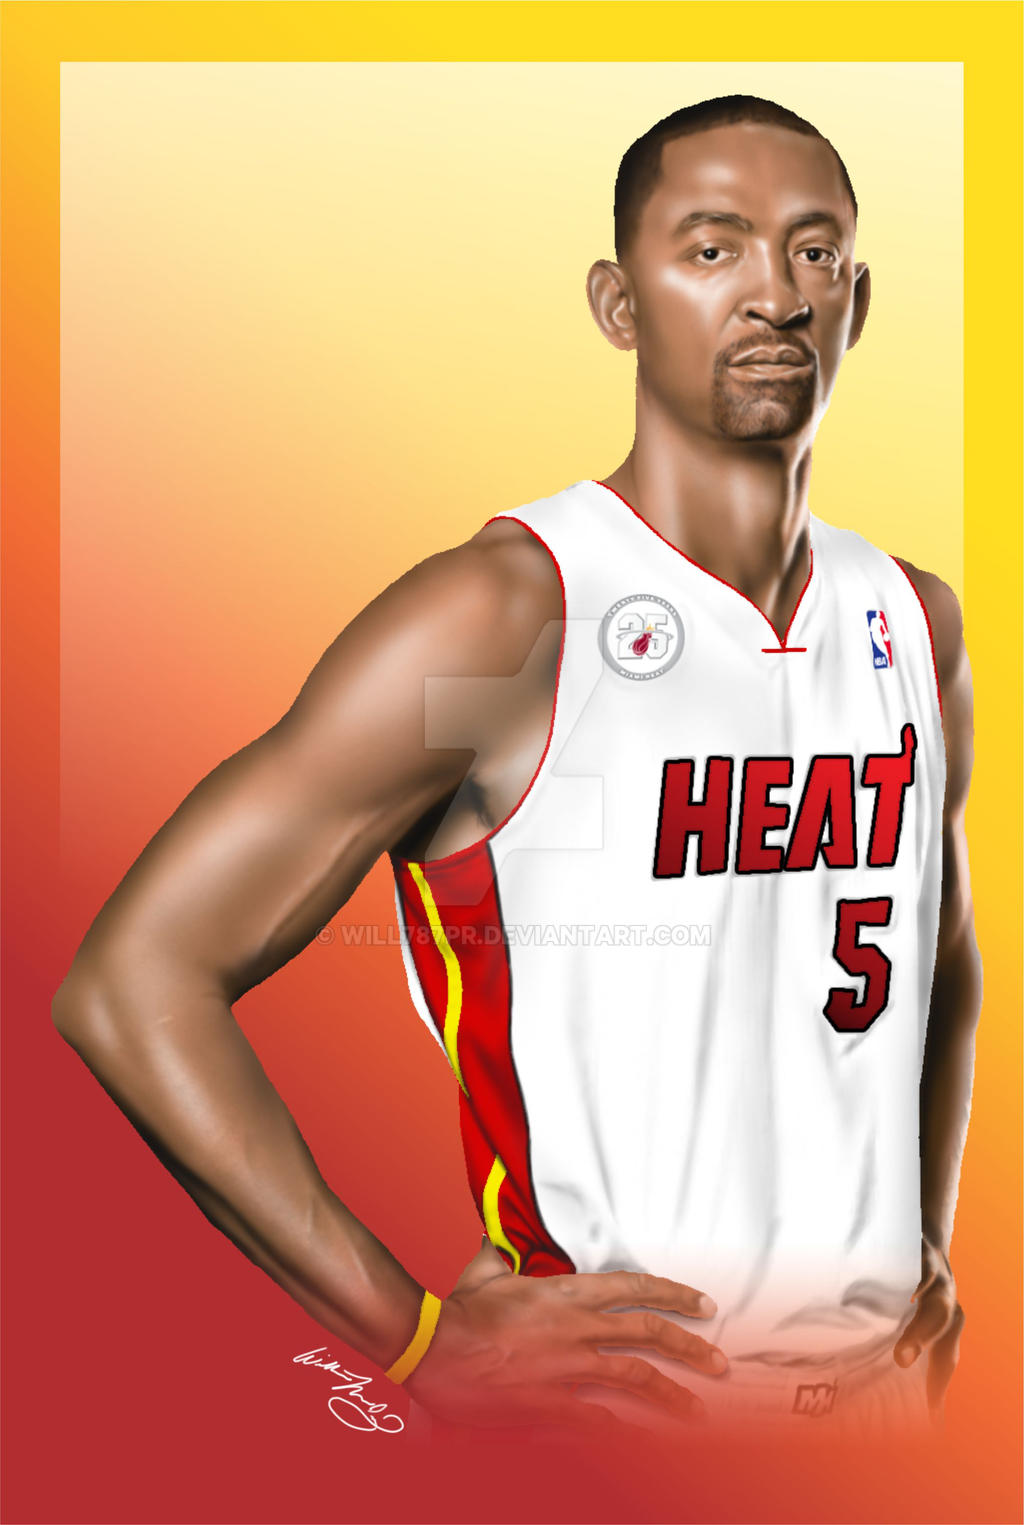 Juwan Howard MIAMI HEAT by will787pr on DeviantArt